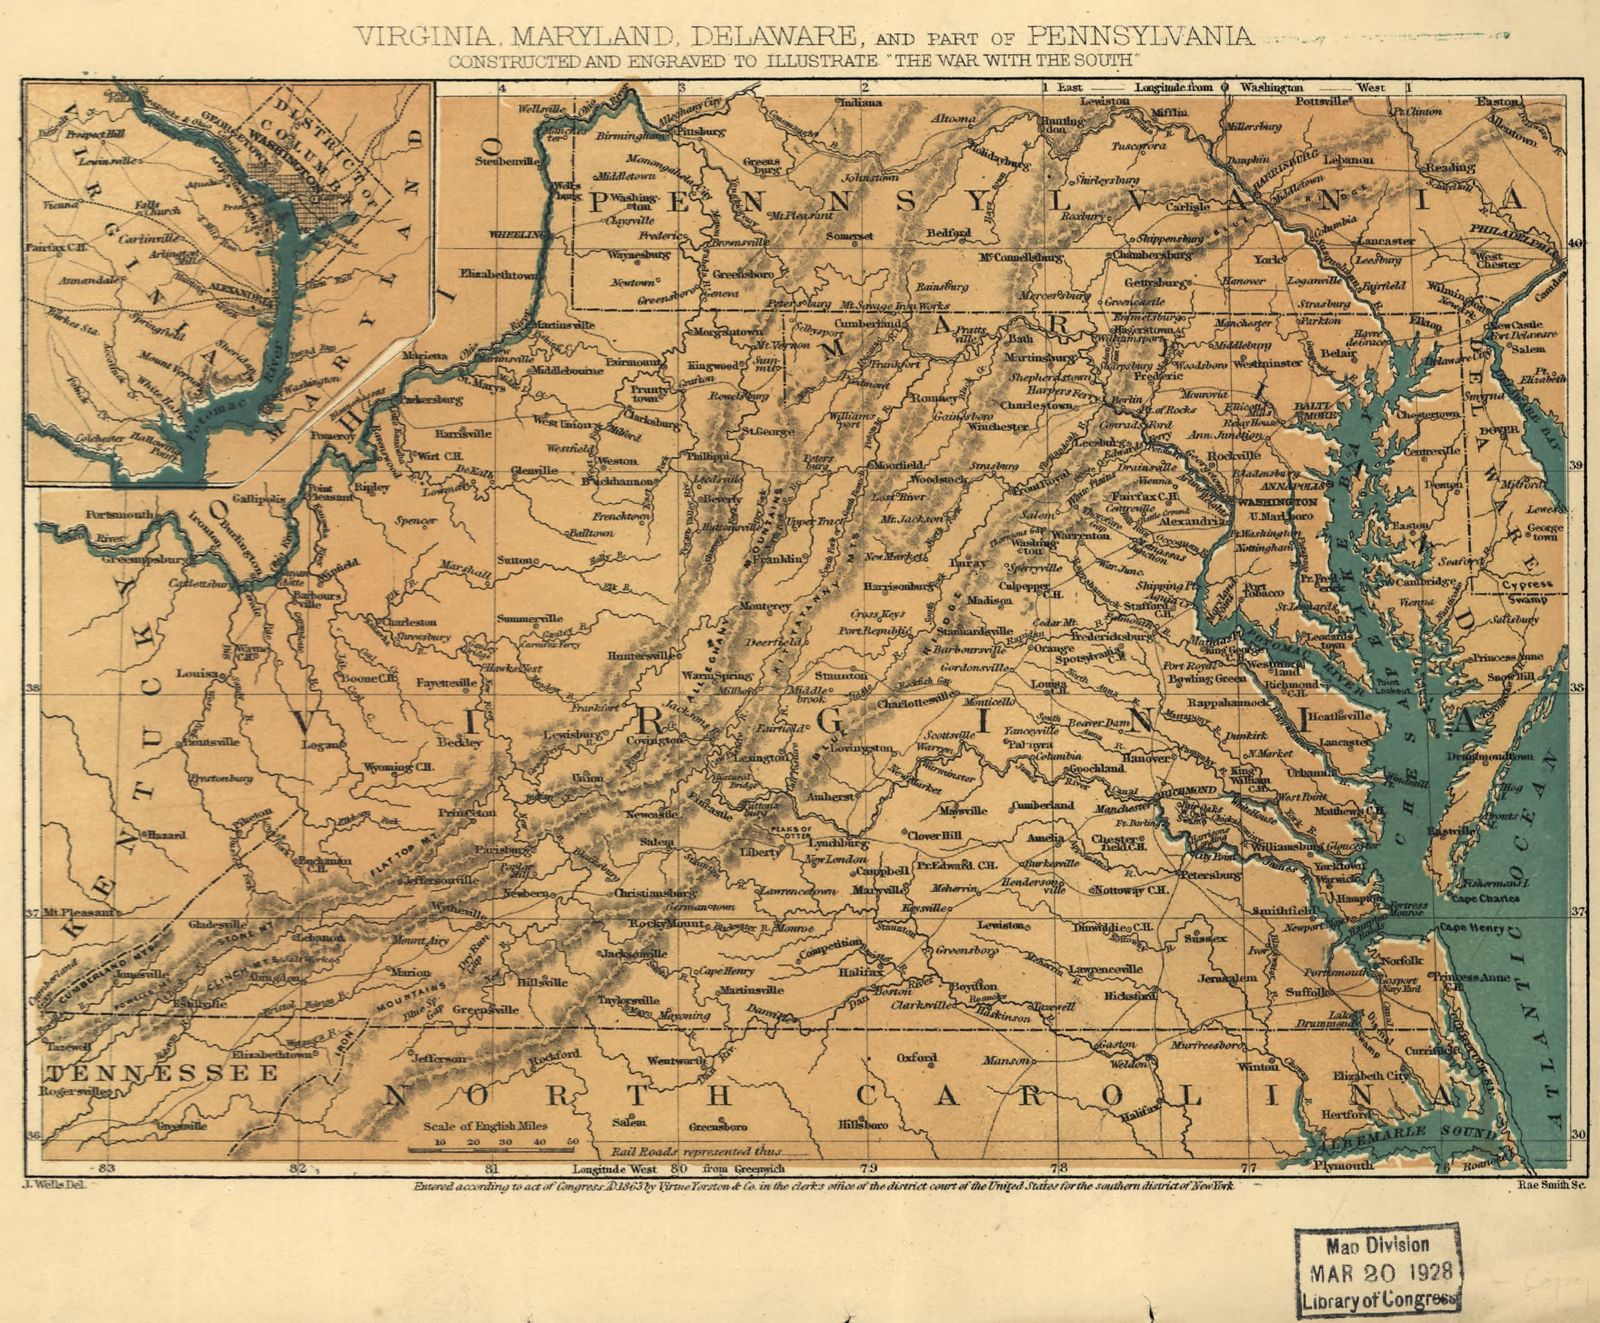 Virginia, Maryland, Delaware, and part of Pennsylvania.